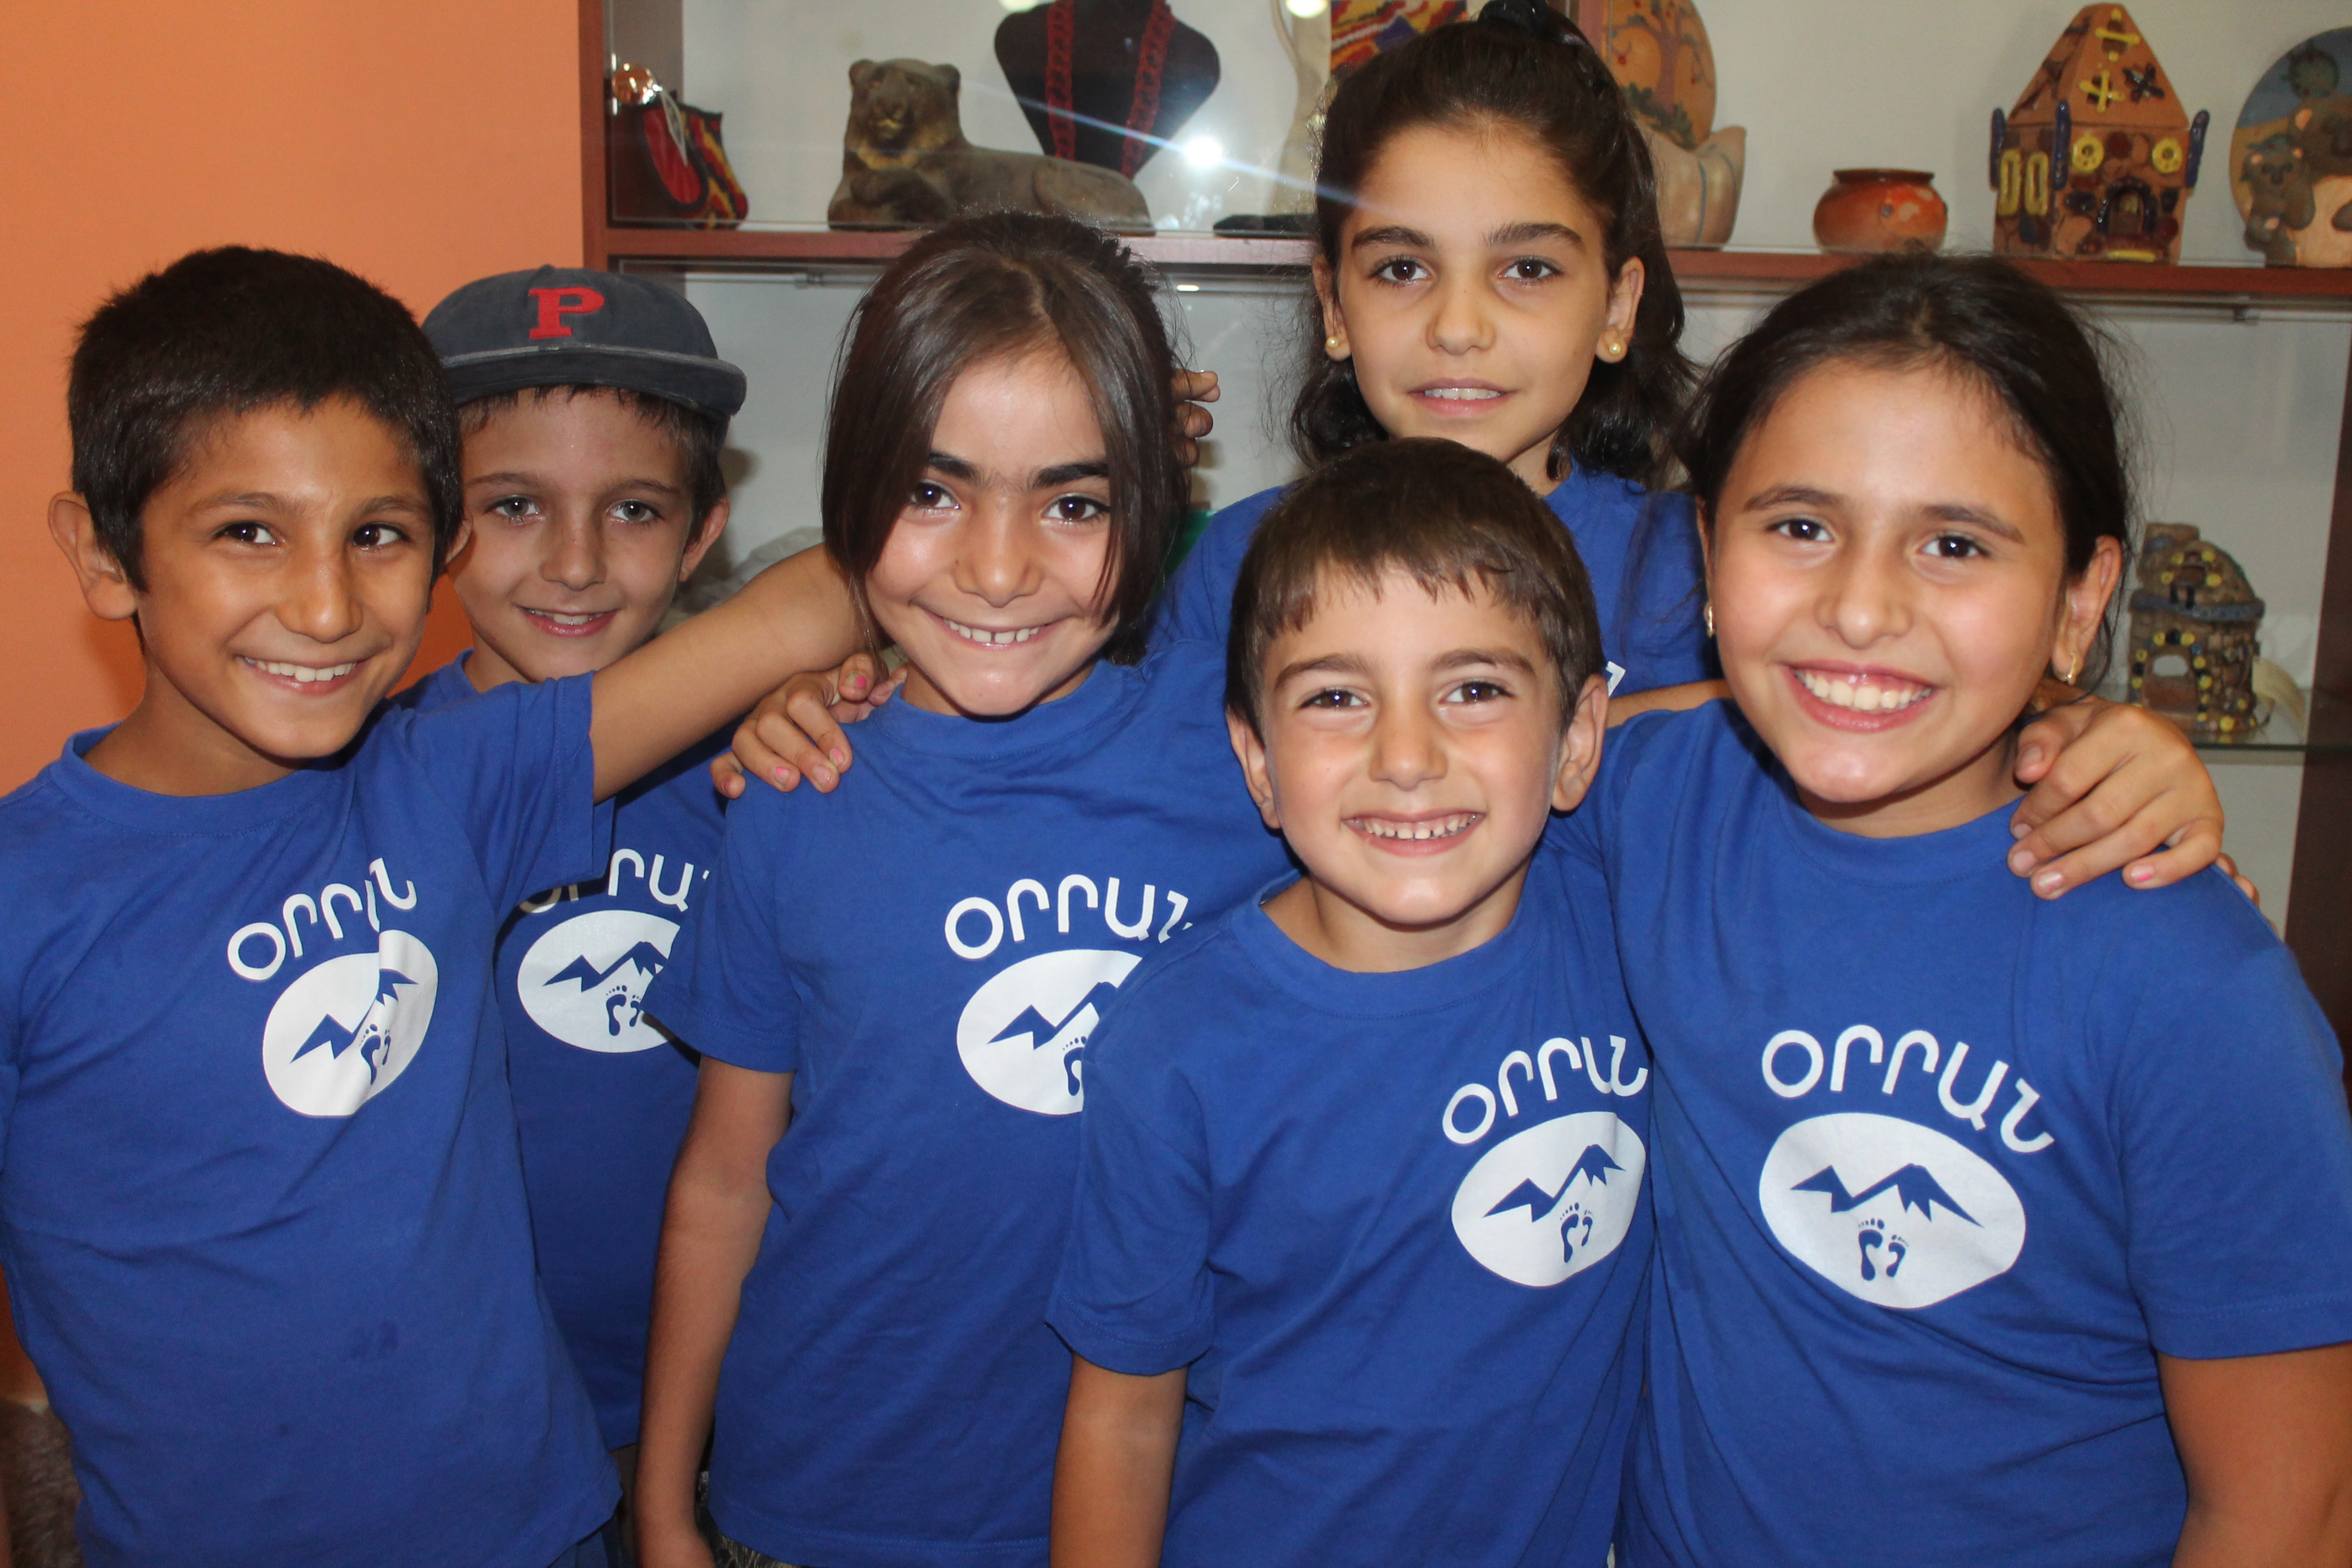 Orran NGO: helping children and families which are in financially vulnerable situations